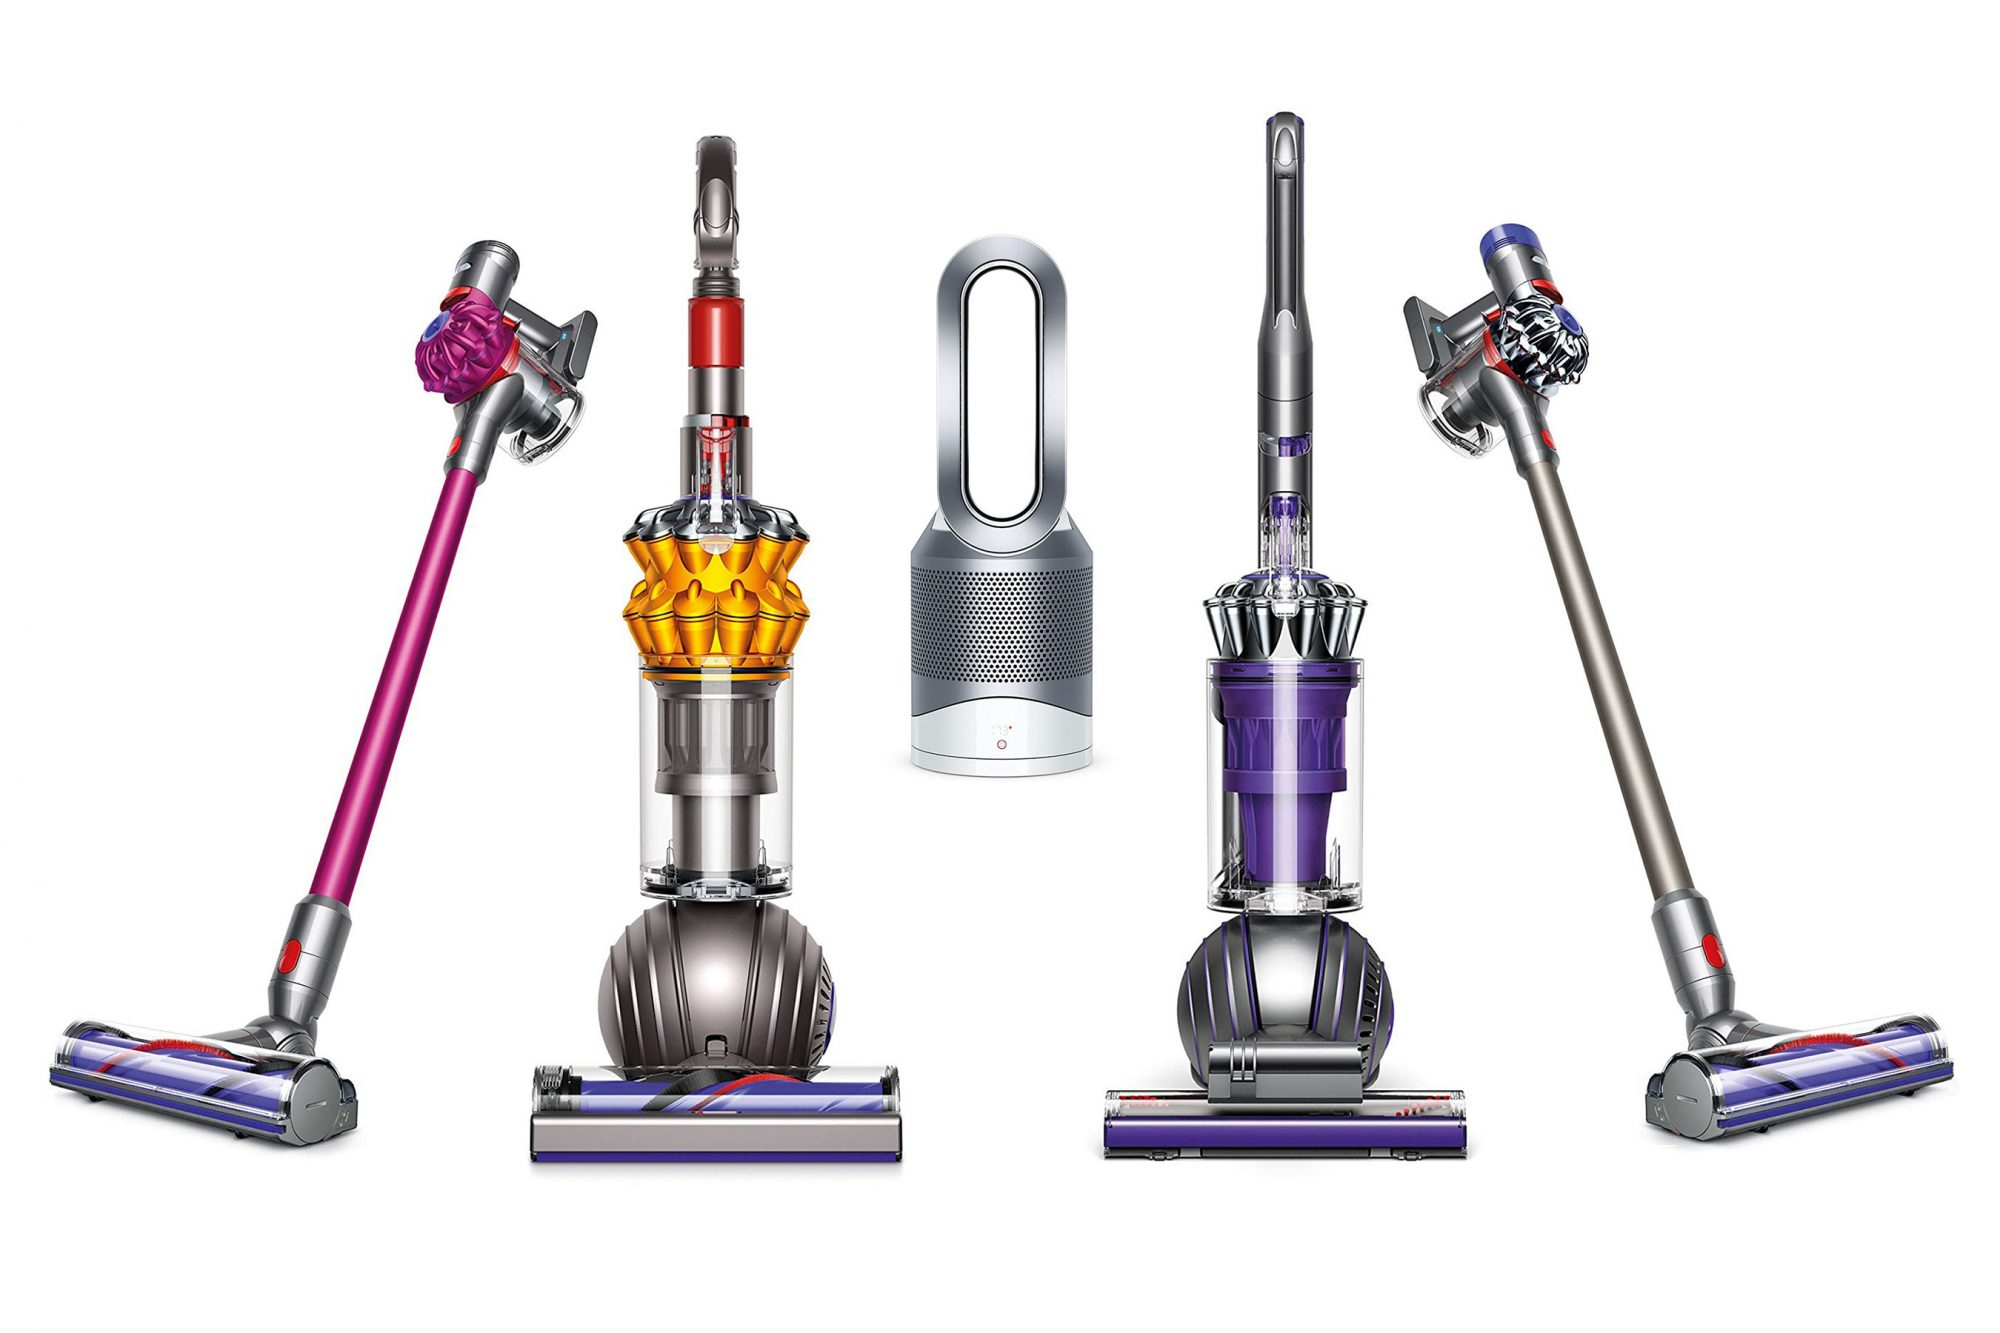 Deal Alert! Dyson Vacuums and Air Purifiers Are Majorly Marked Down at Amazon